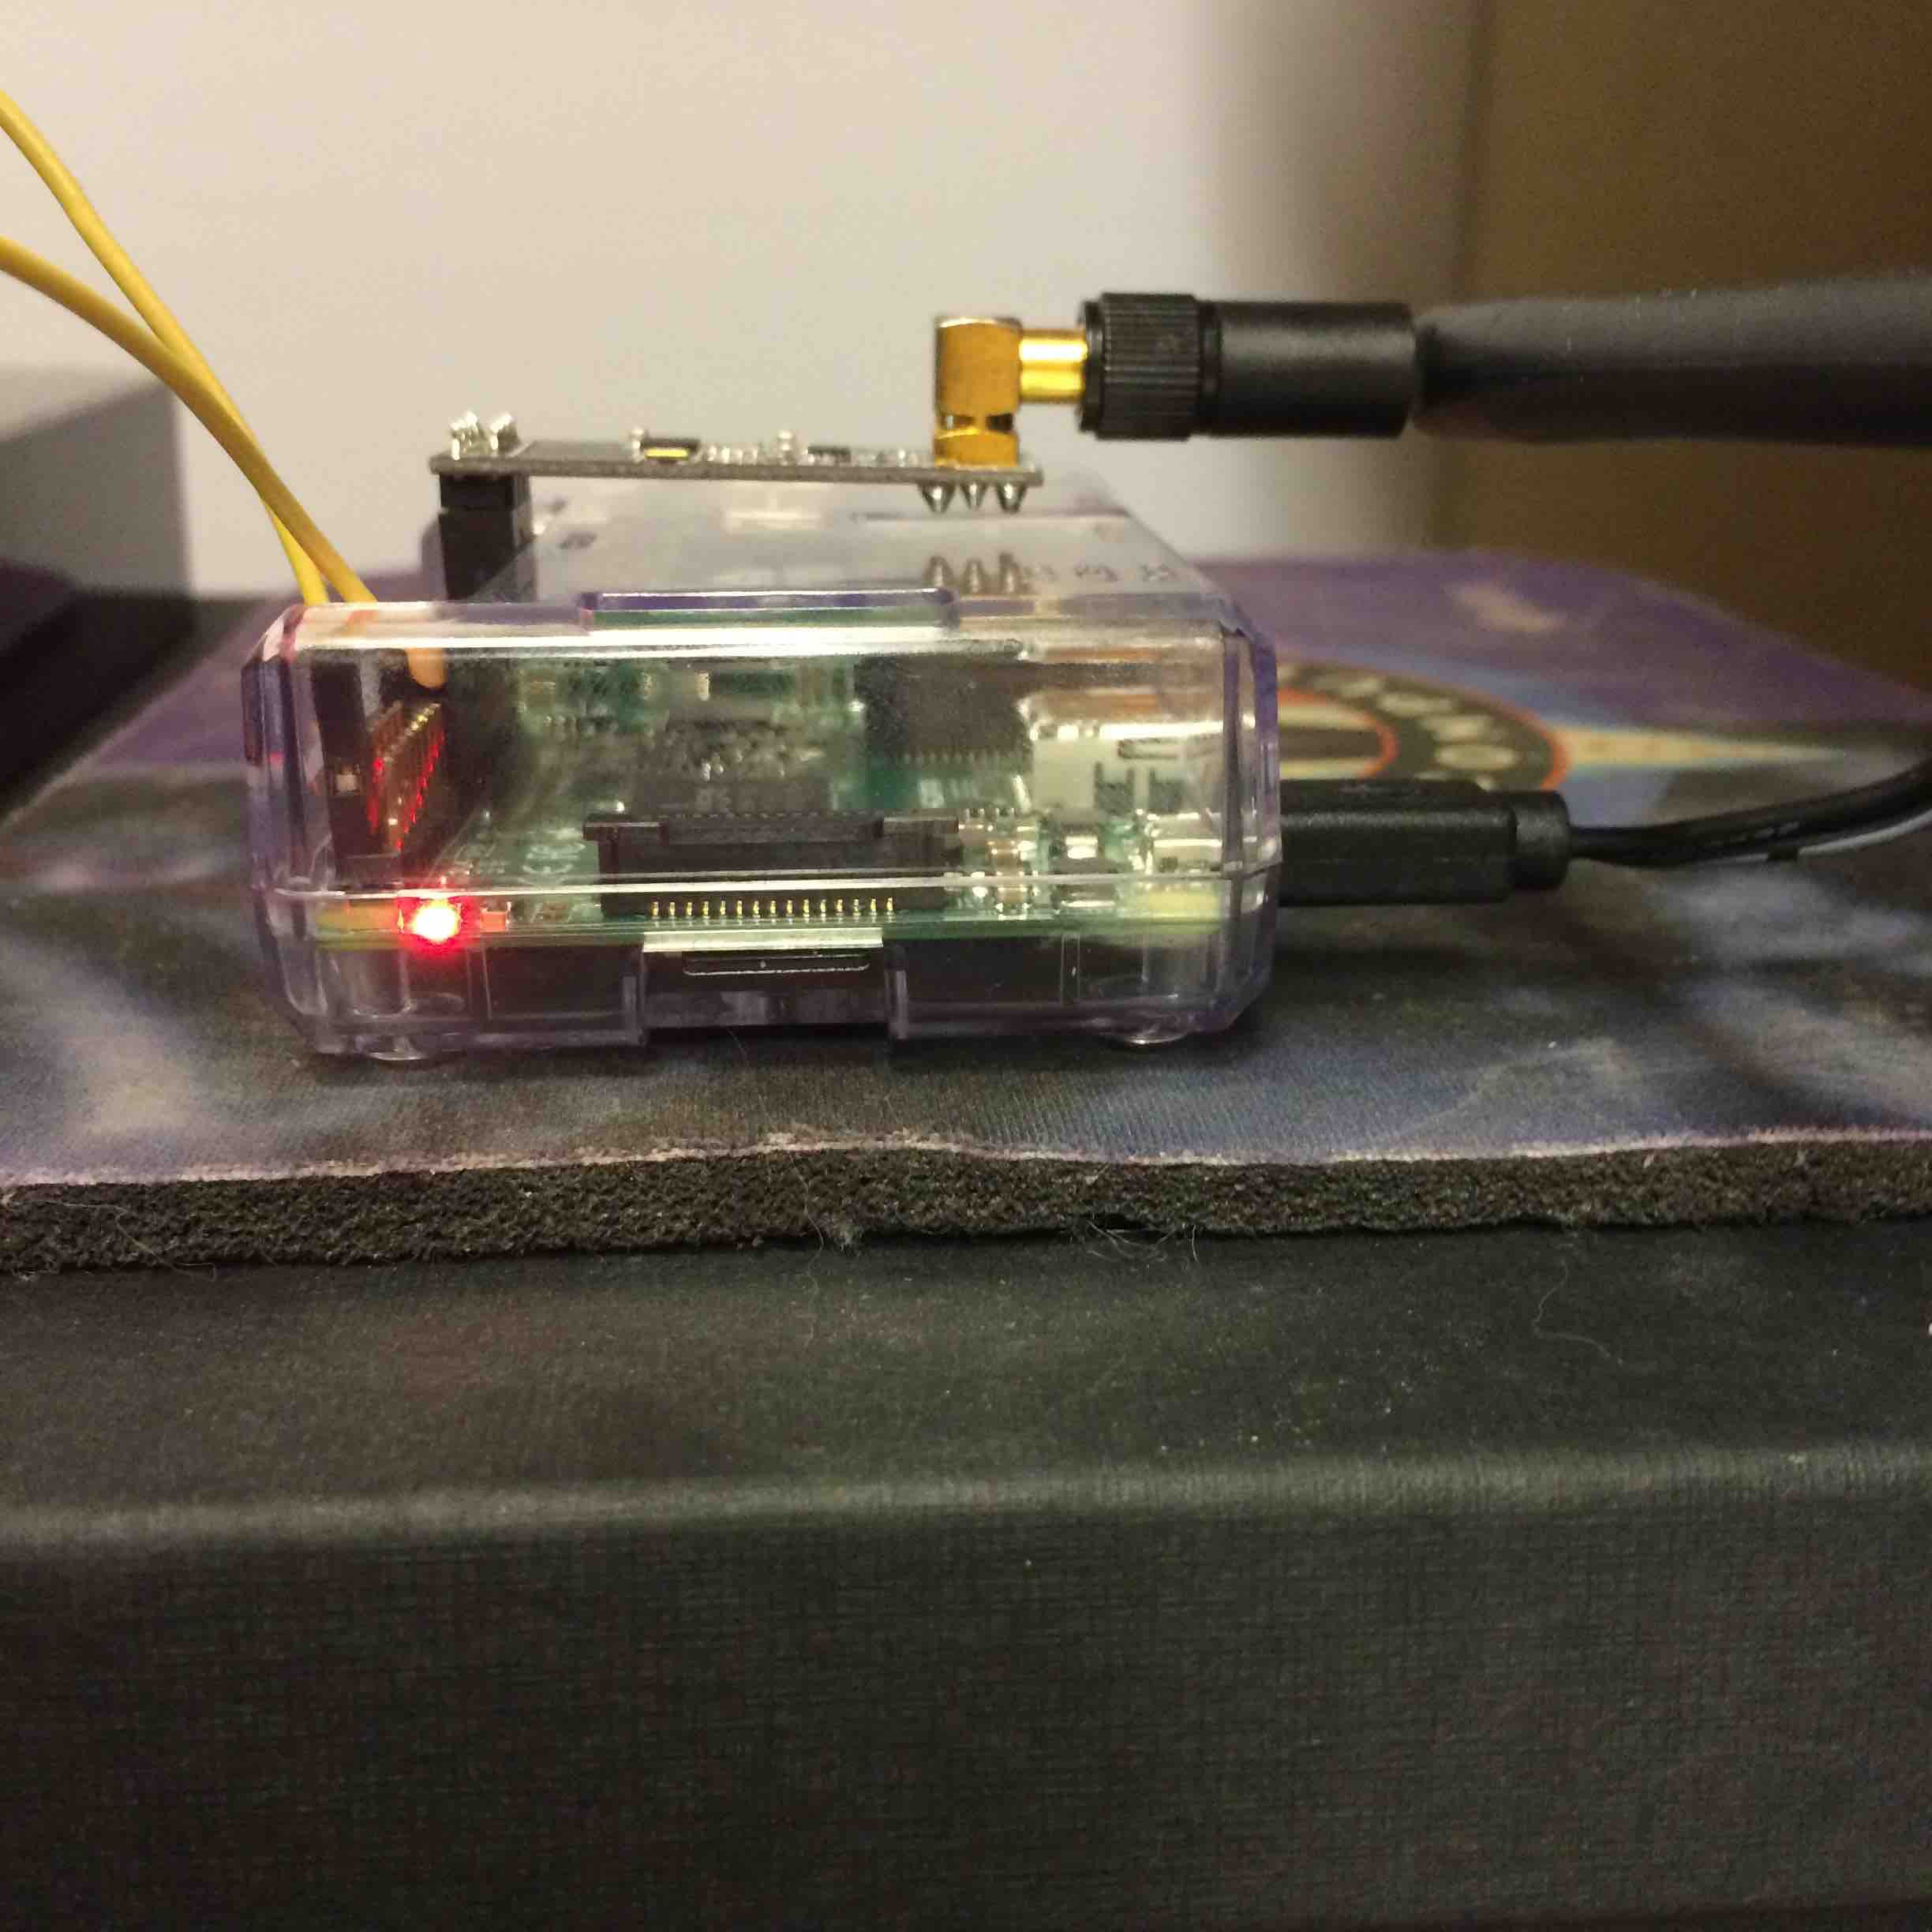 Domoticz as controller **and** a gateway for MySensor nodes running